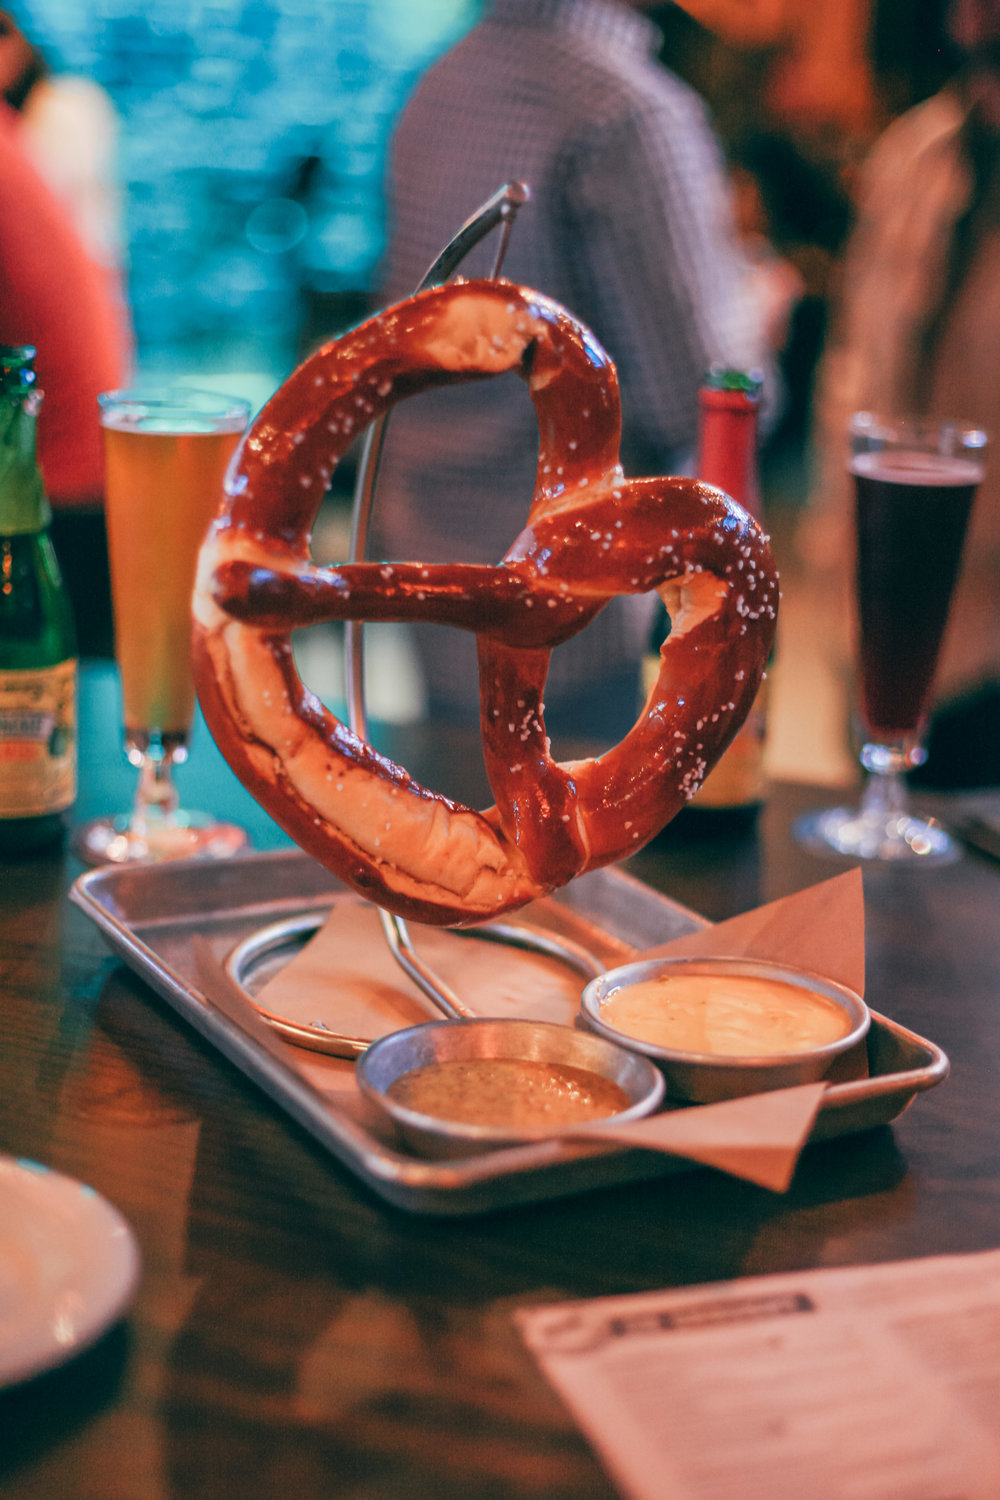 German Pretzel: Served with a house-made stone ground mustard.